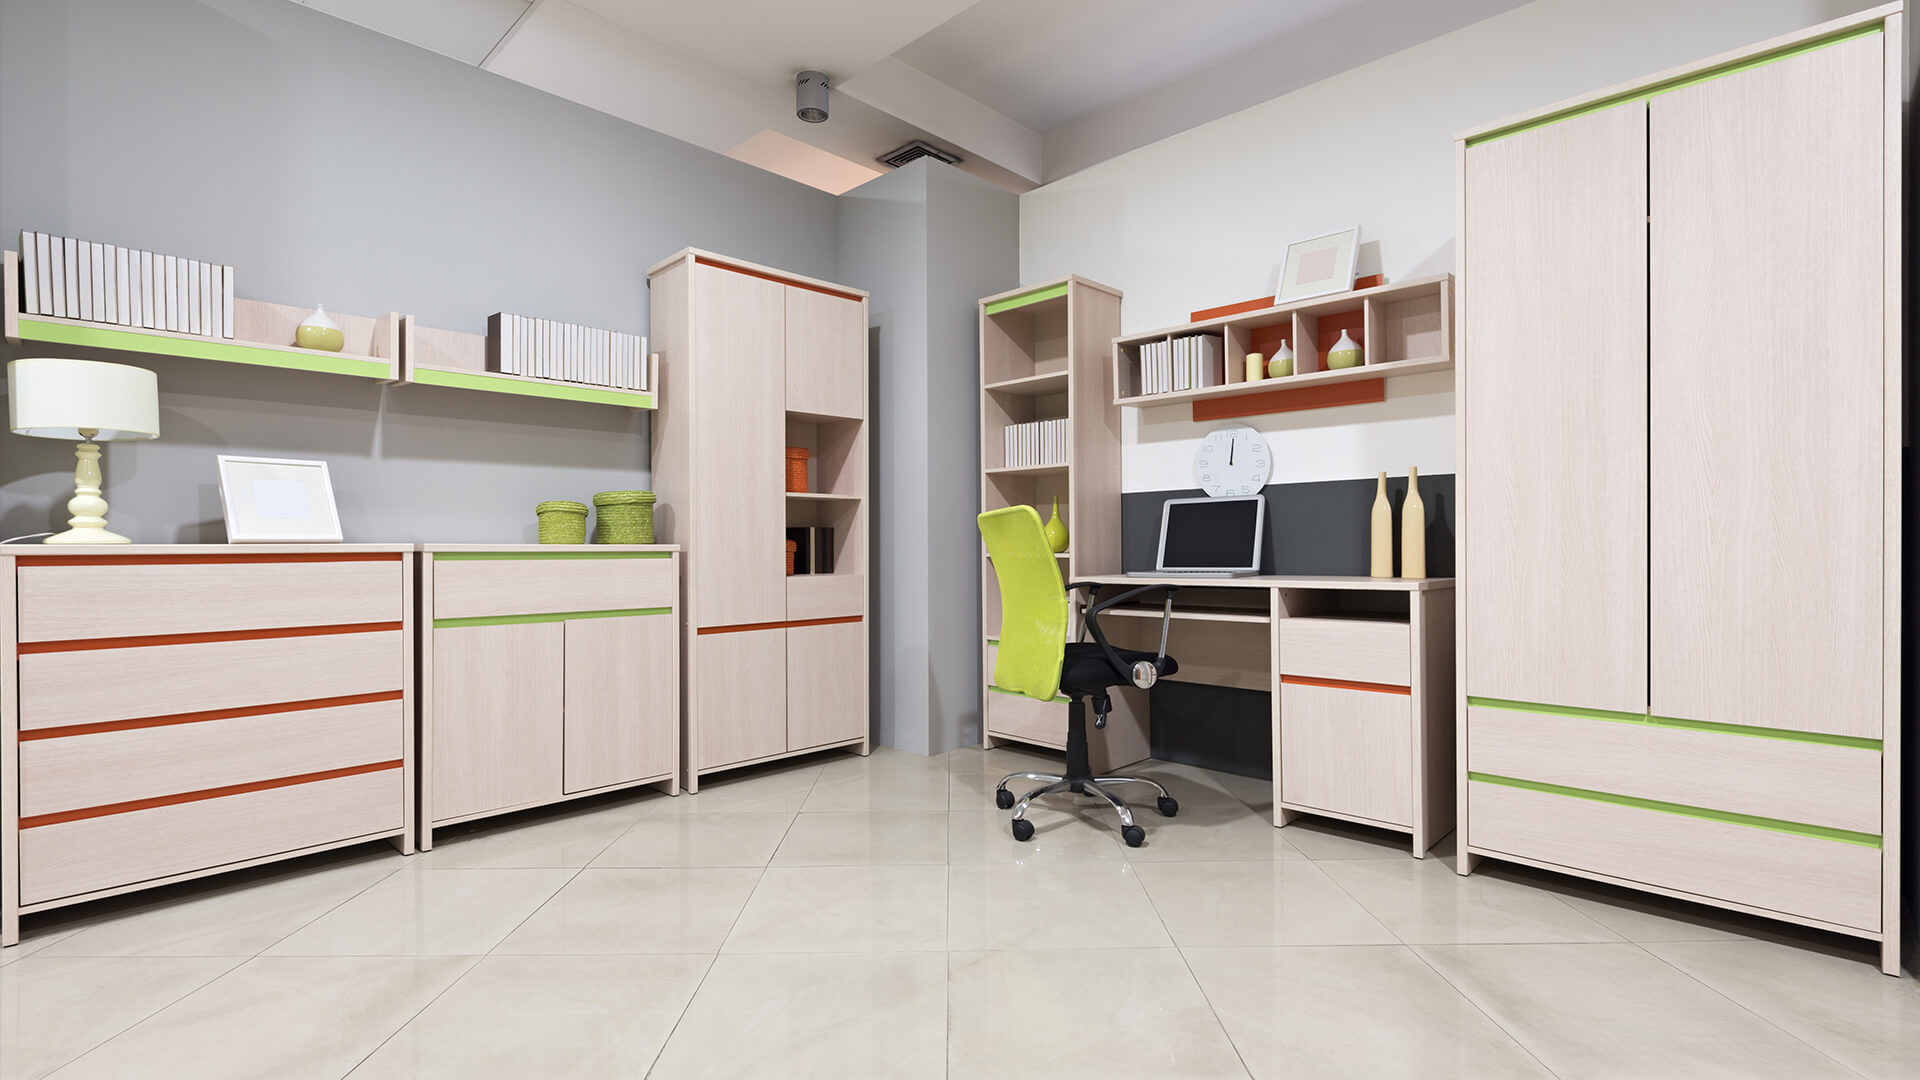 Superior Our Company Produces Beds, Tables, Shelves, Desks, Drawers, Cabinets,  Wardrobes, Chests Of Drawers And Other Necessary Furniture. We Also Produce  Kitchen ...